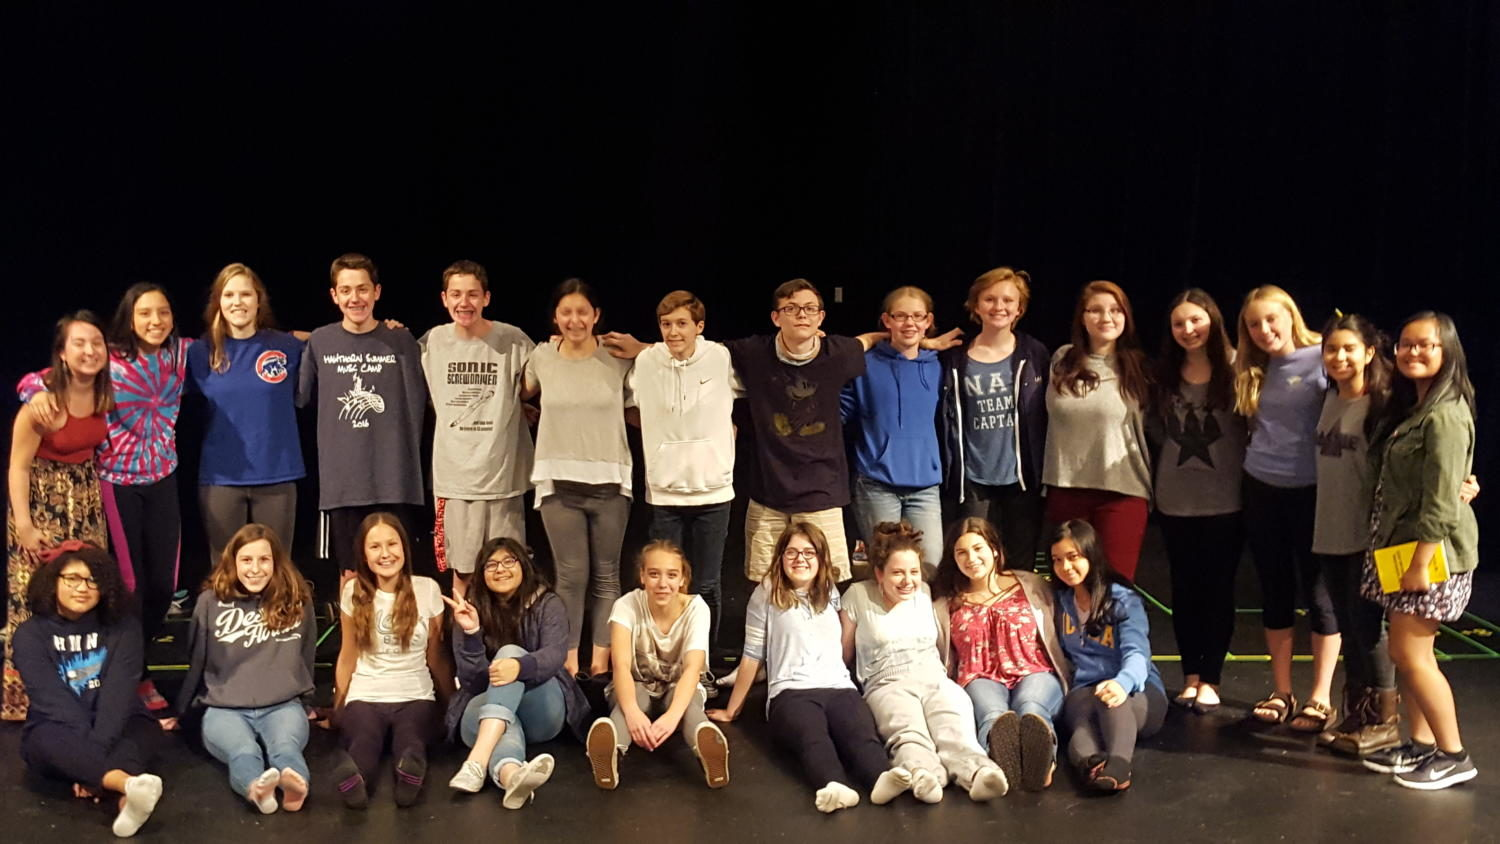 Group photo of cast and director